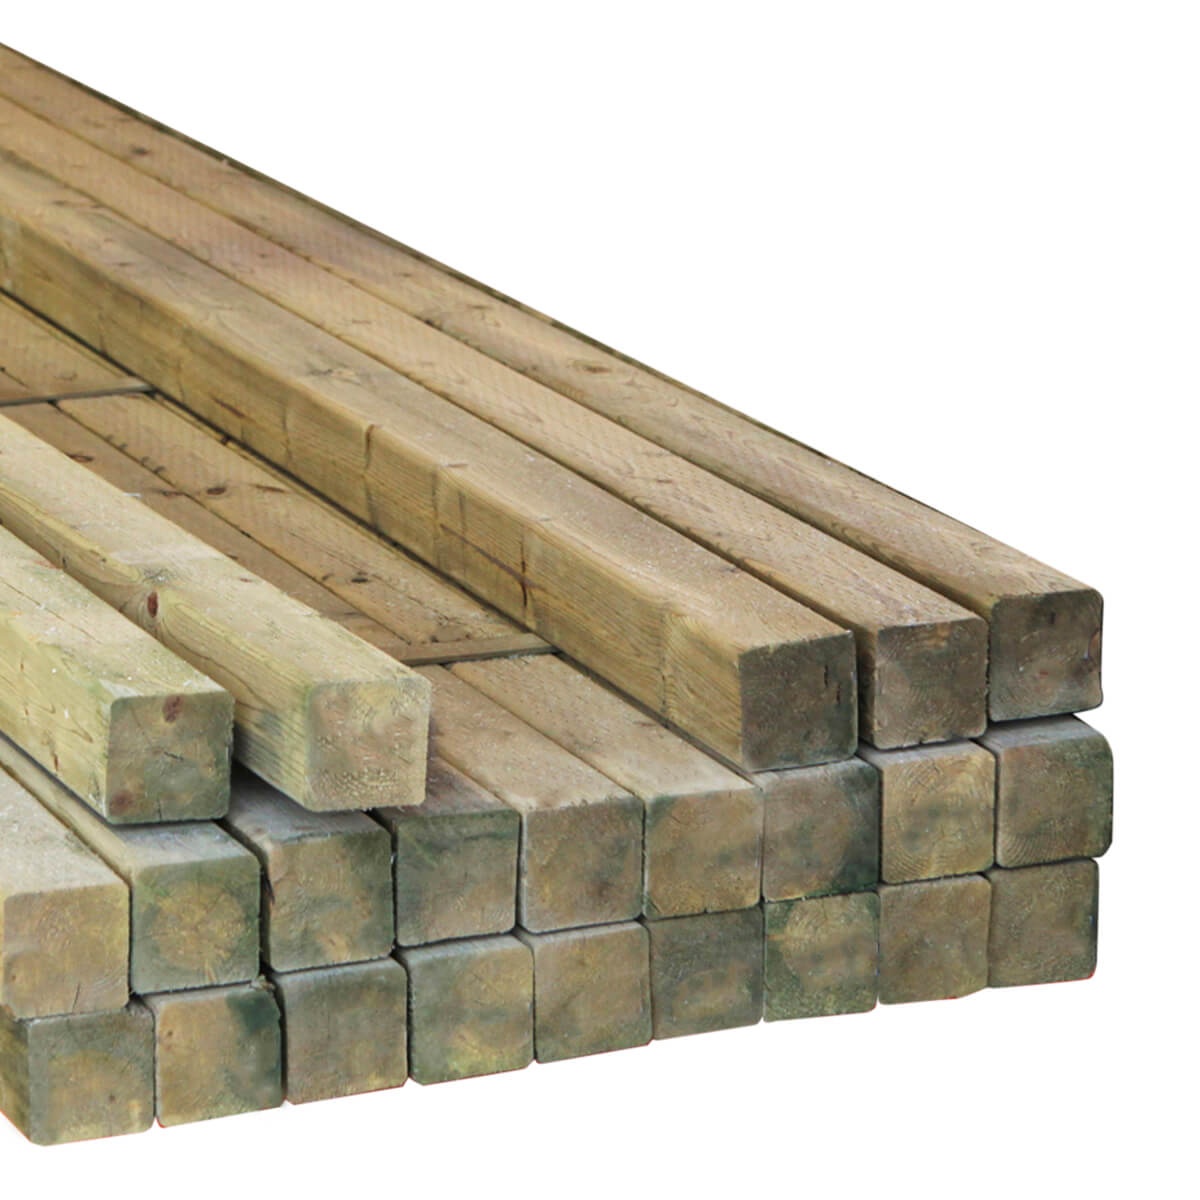 Rough CCA Treated Timbers - 4 x 6 x 22'